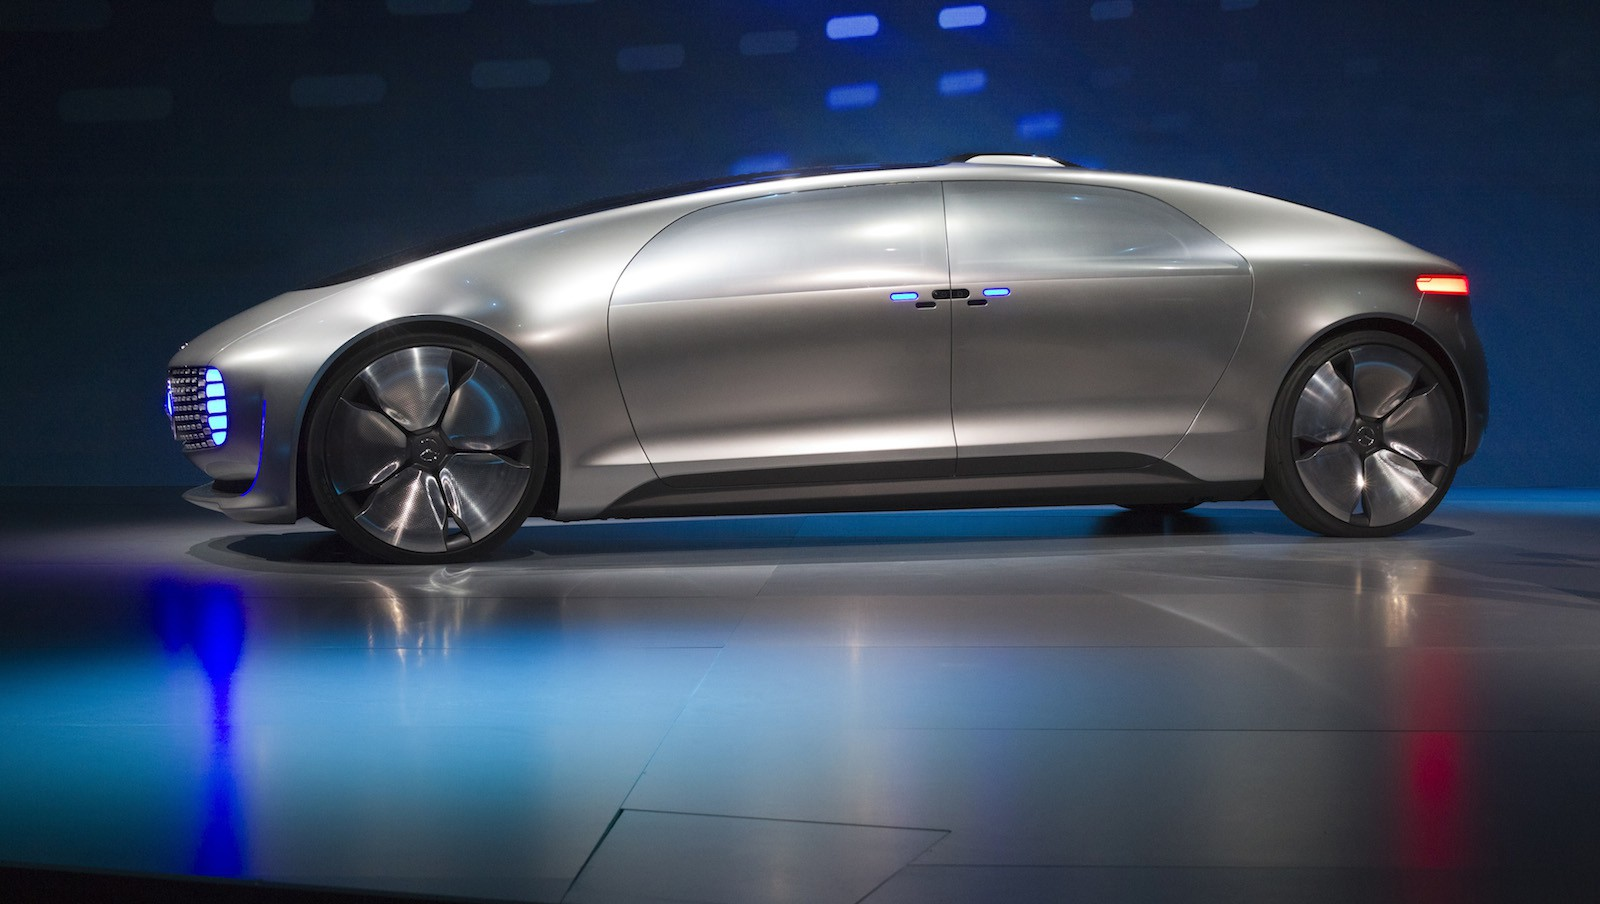 The Mercedes-Benz F015 Luxury in Motion autonomous concept car is pictured on-stage during the 2015 International Consumer Electronics Show (CES) in Las Vegas, Nevada January 5, 2015. Germany's Daimler AG wants to reset consumers' expectations about self-driving cars with its futuristic Mercedes-Benz F 015 concept, unveiled Monday evening at the annual Consumer Electronics Show in Las Vegas.  (UNITED STATES - Tags: SCIENCE TECHNOLOGY BUSINESS TRANSPORT) - RTR4K6JT